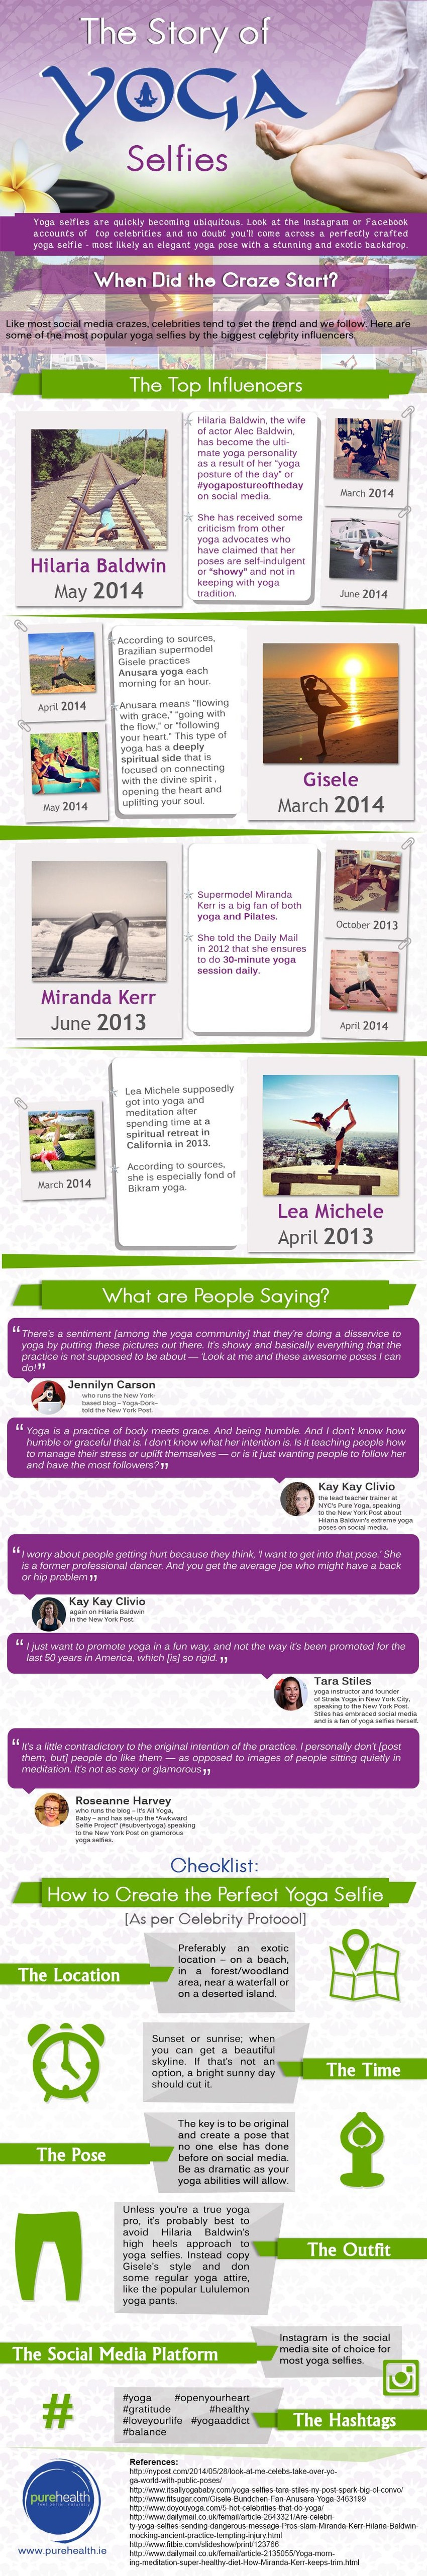 Is Yoga Sefie Crazy? Infographic